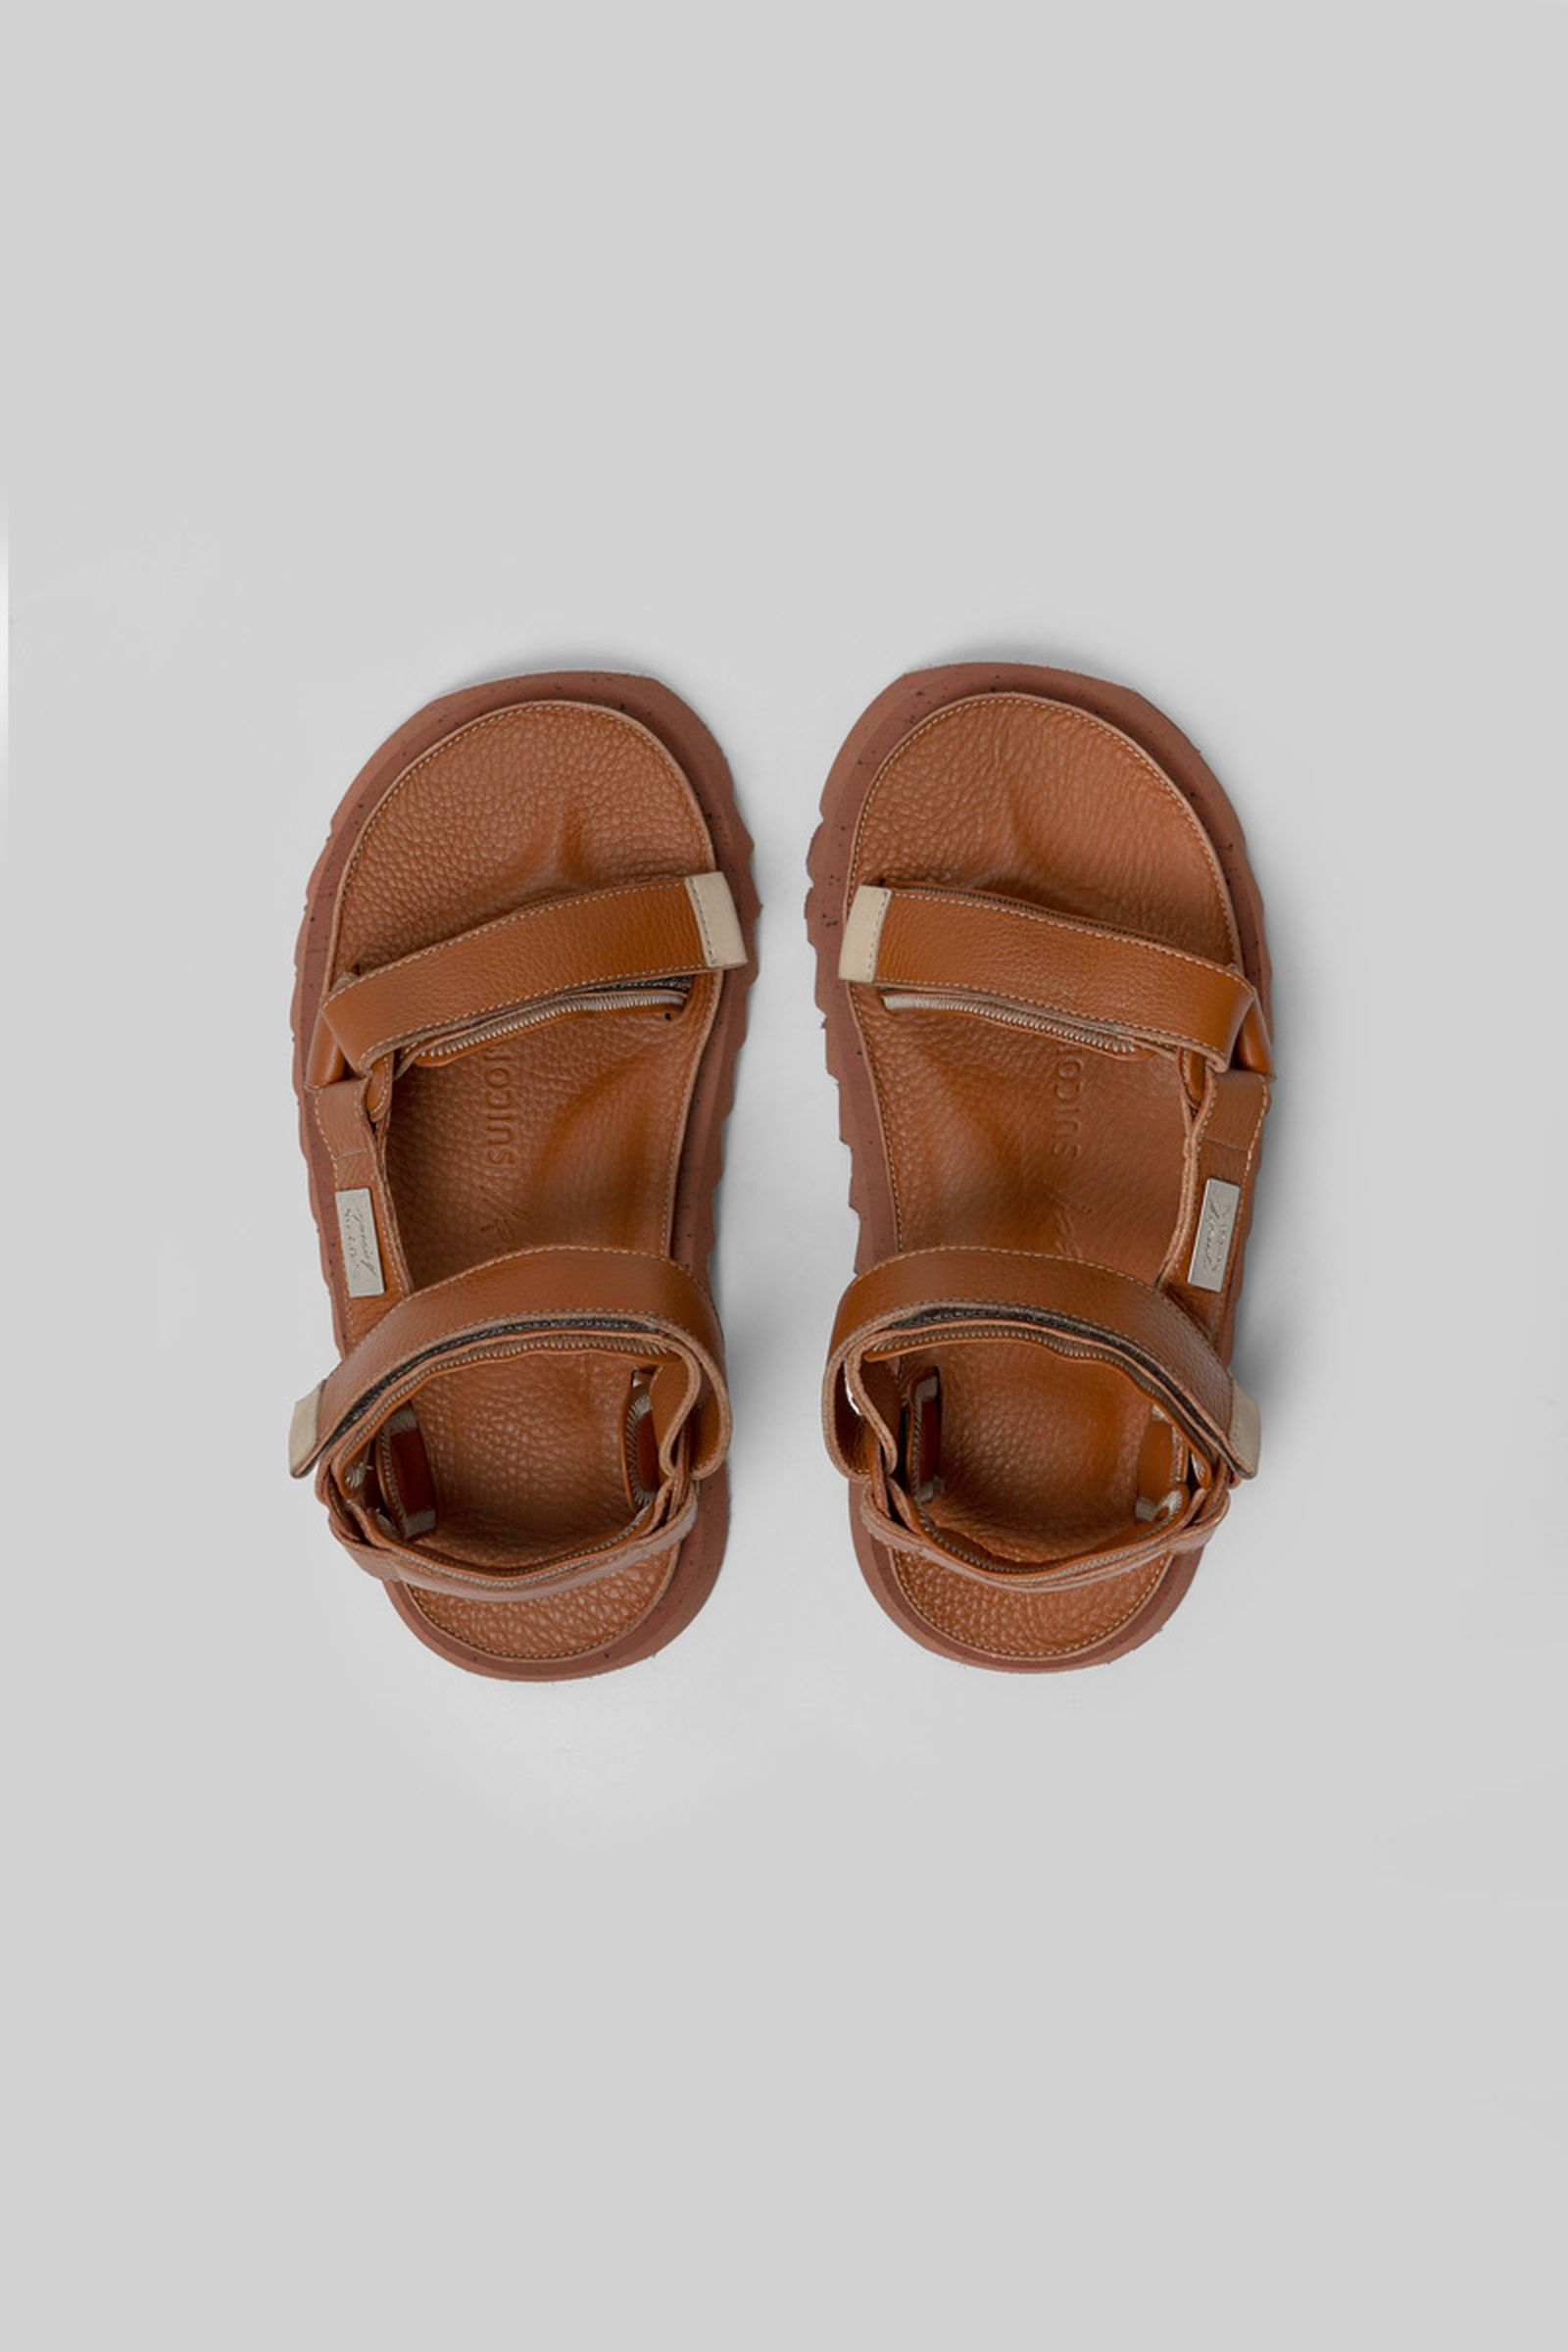 marsell-suicoke-ss21-collection-release-date-price-9